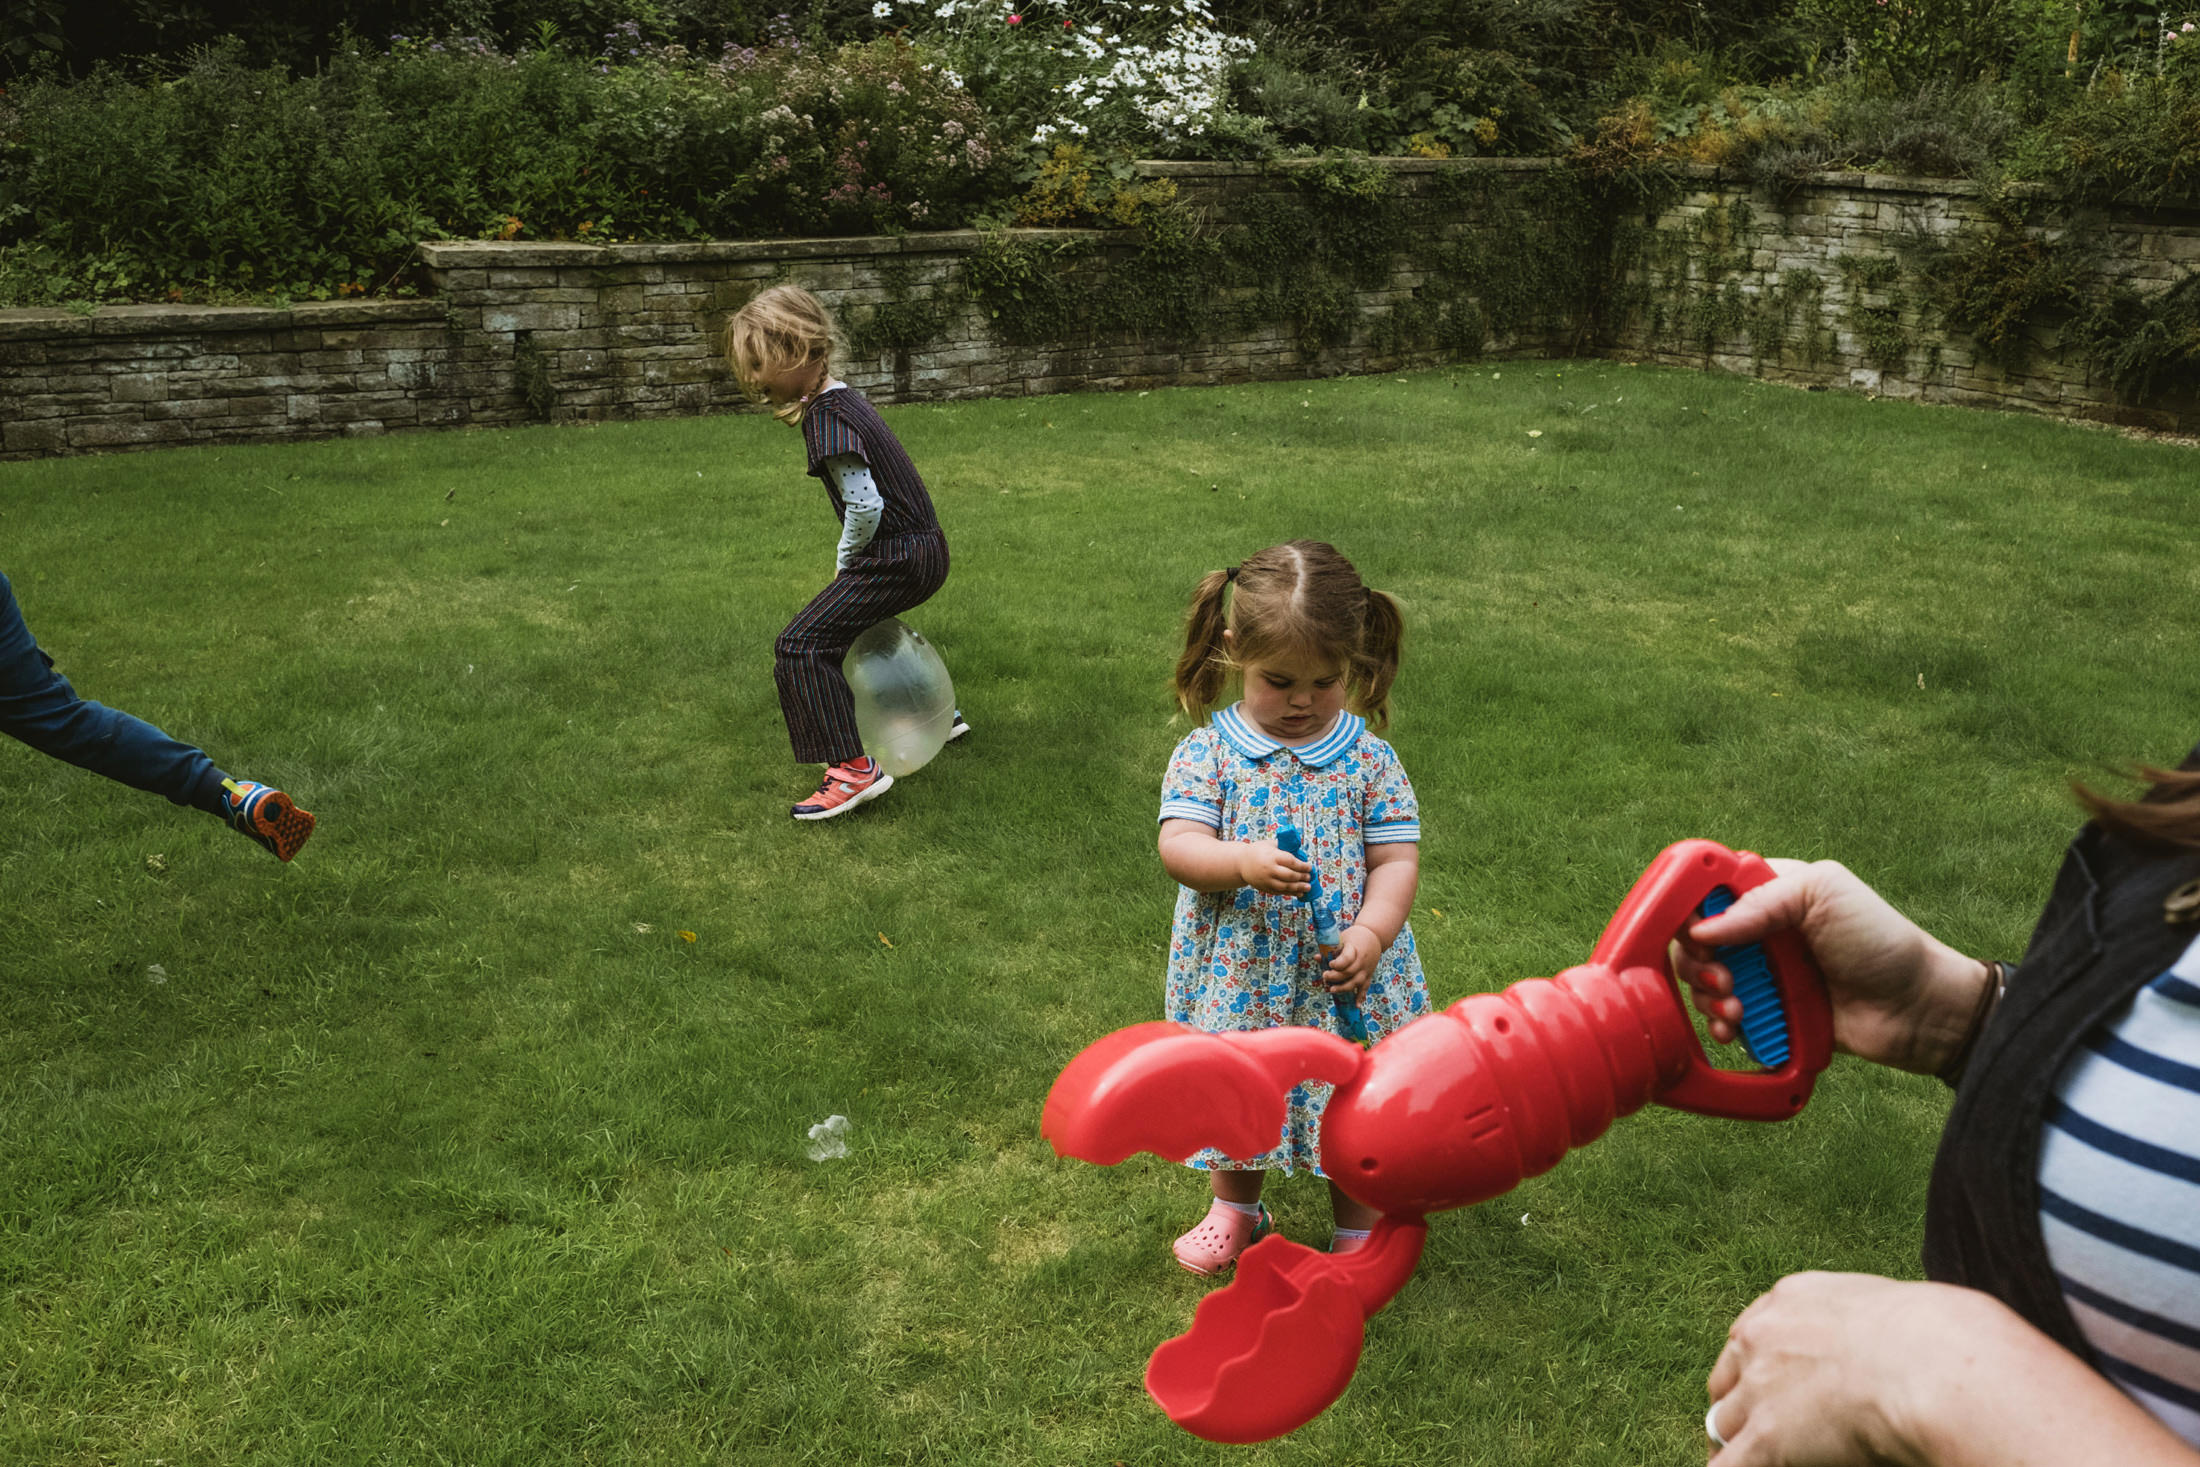 children playing with lobster hand toy